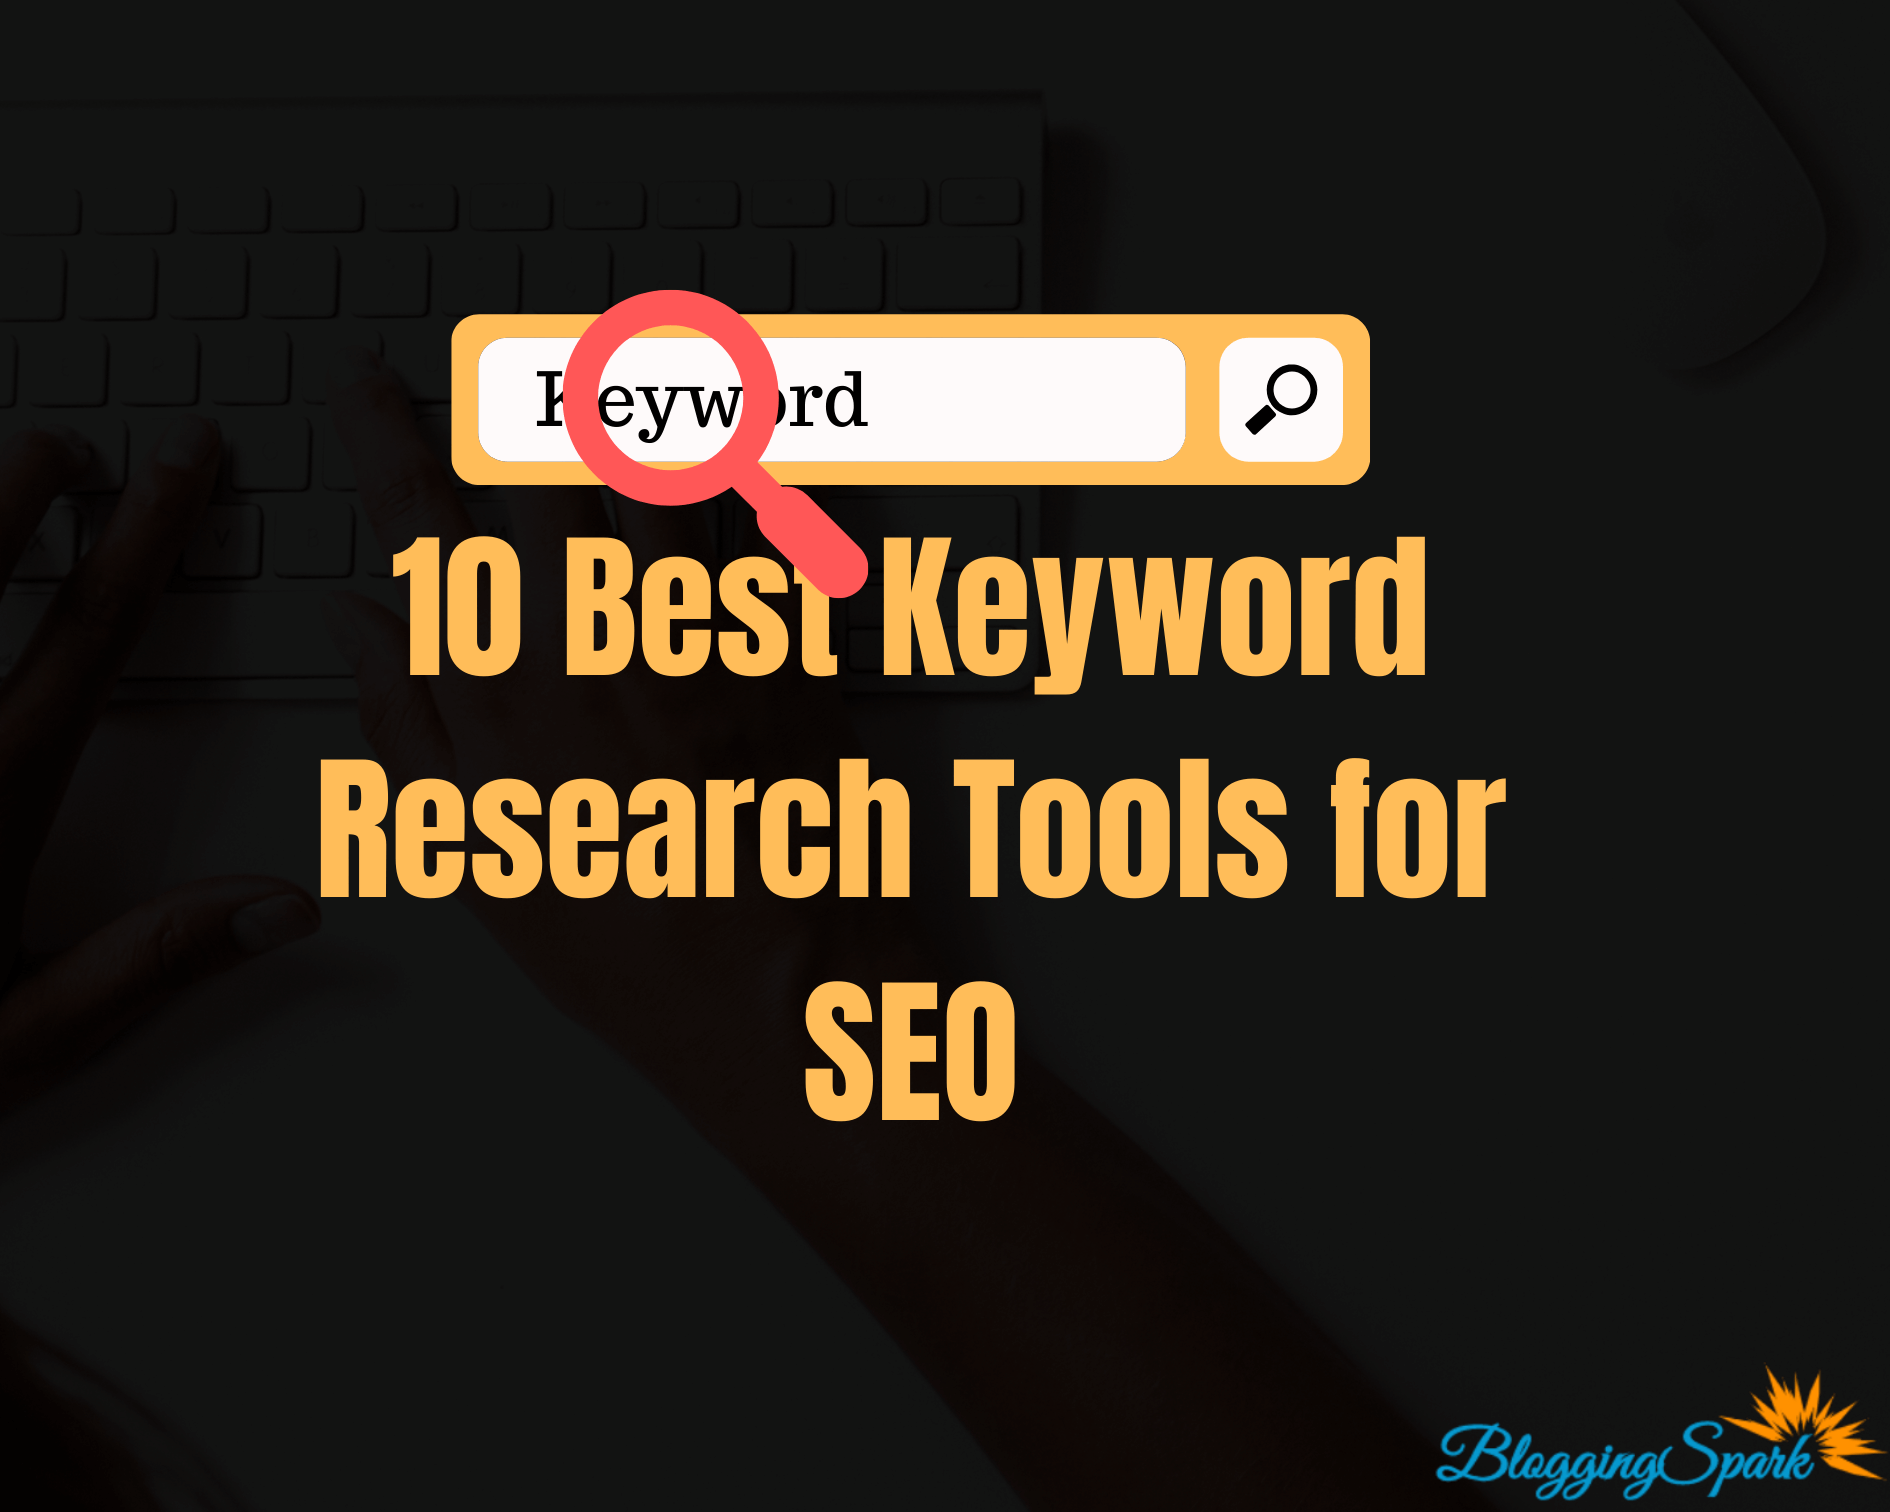 10 Best Keyword Research Tools for SEO in 2021